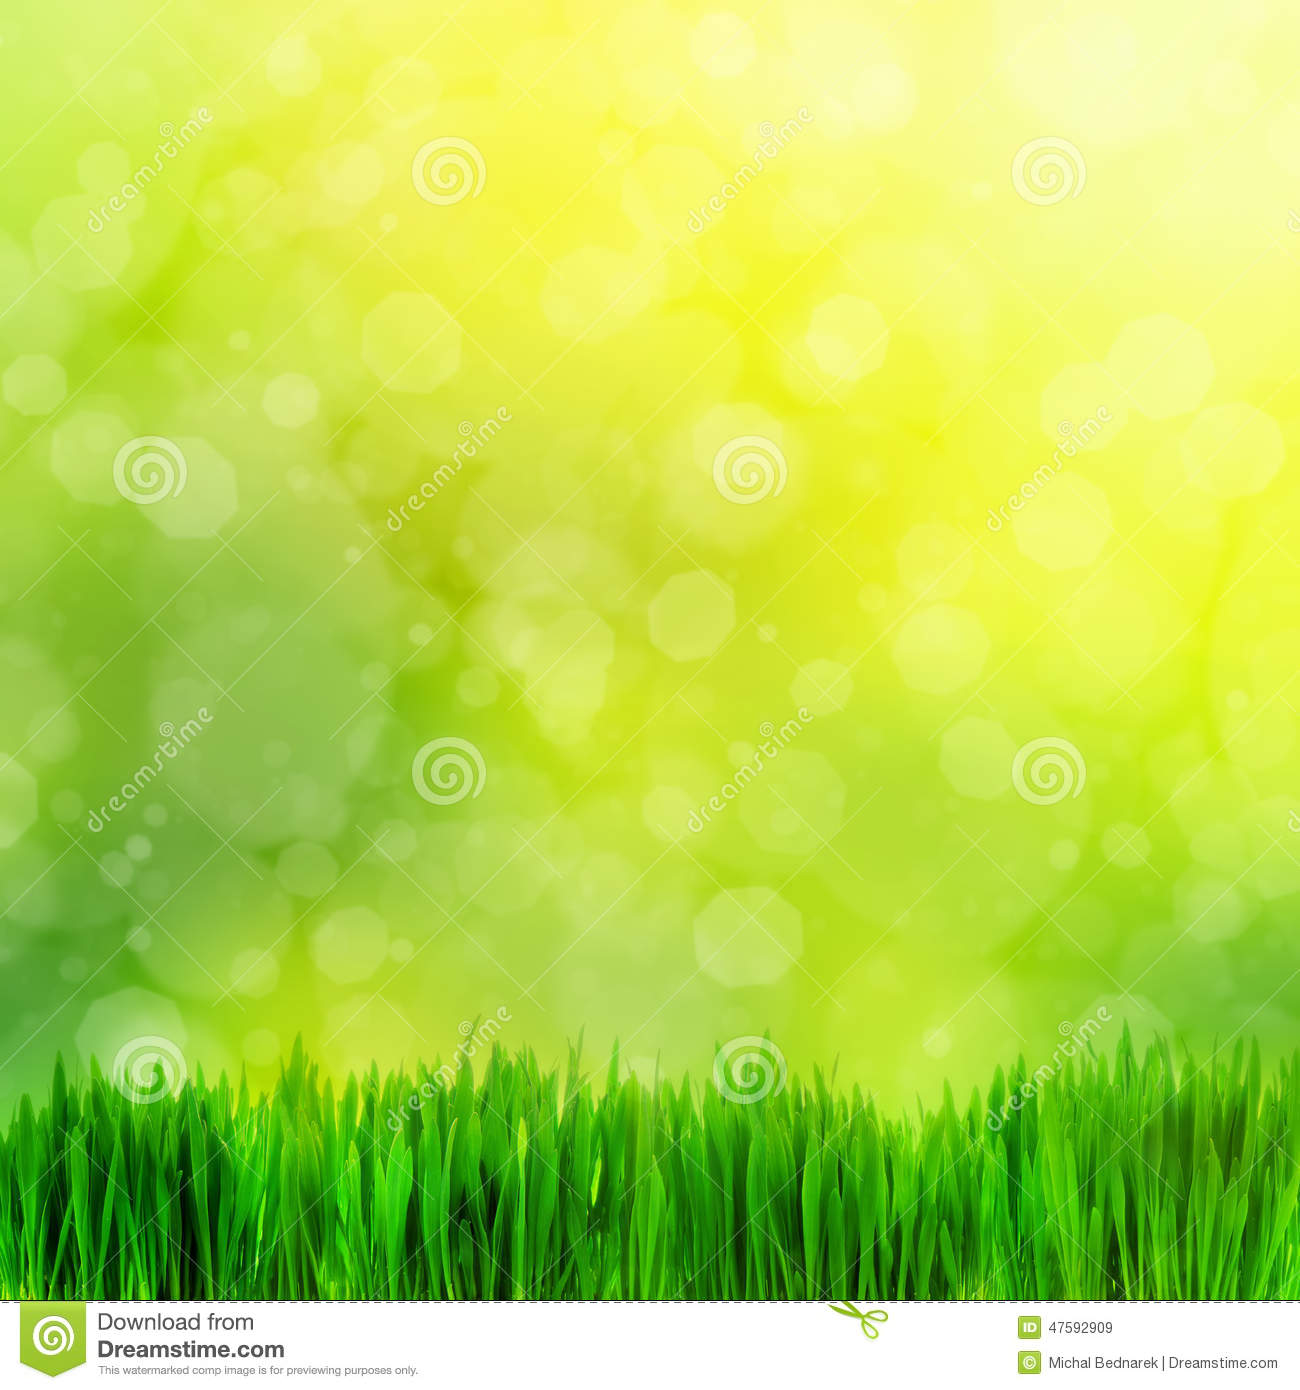 High resolution image of fresh green grass nature blur for Ideanature